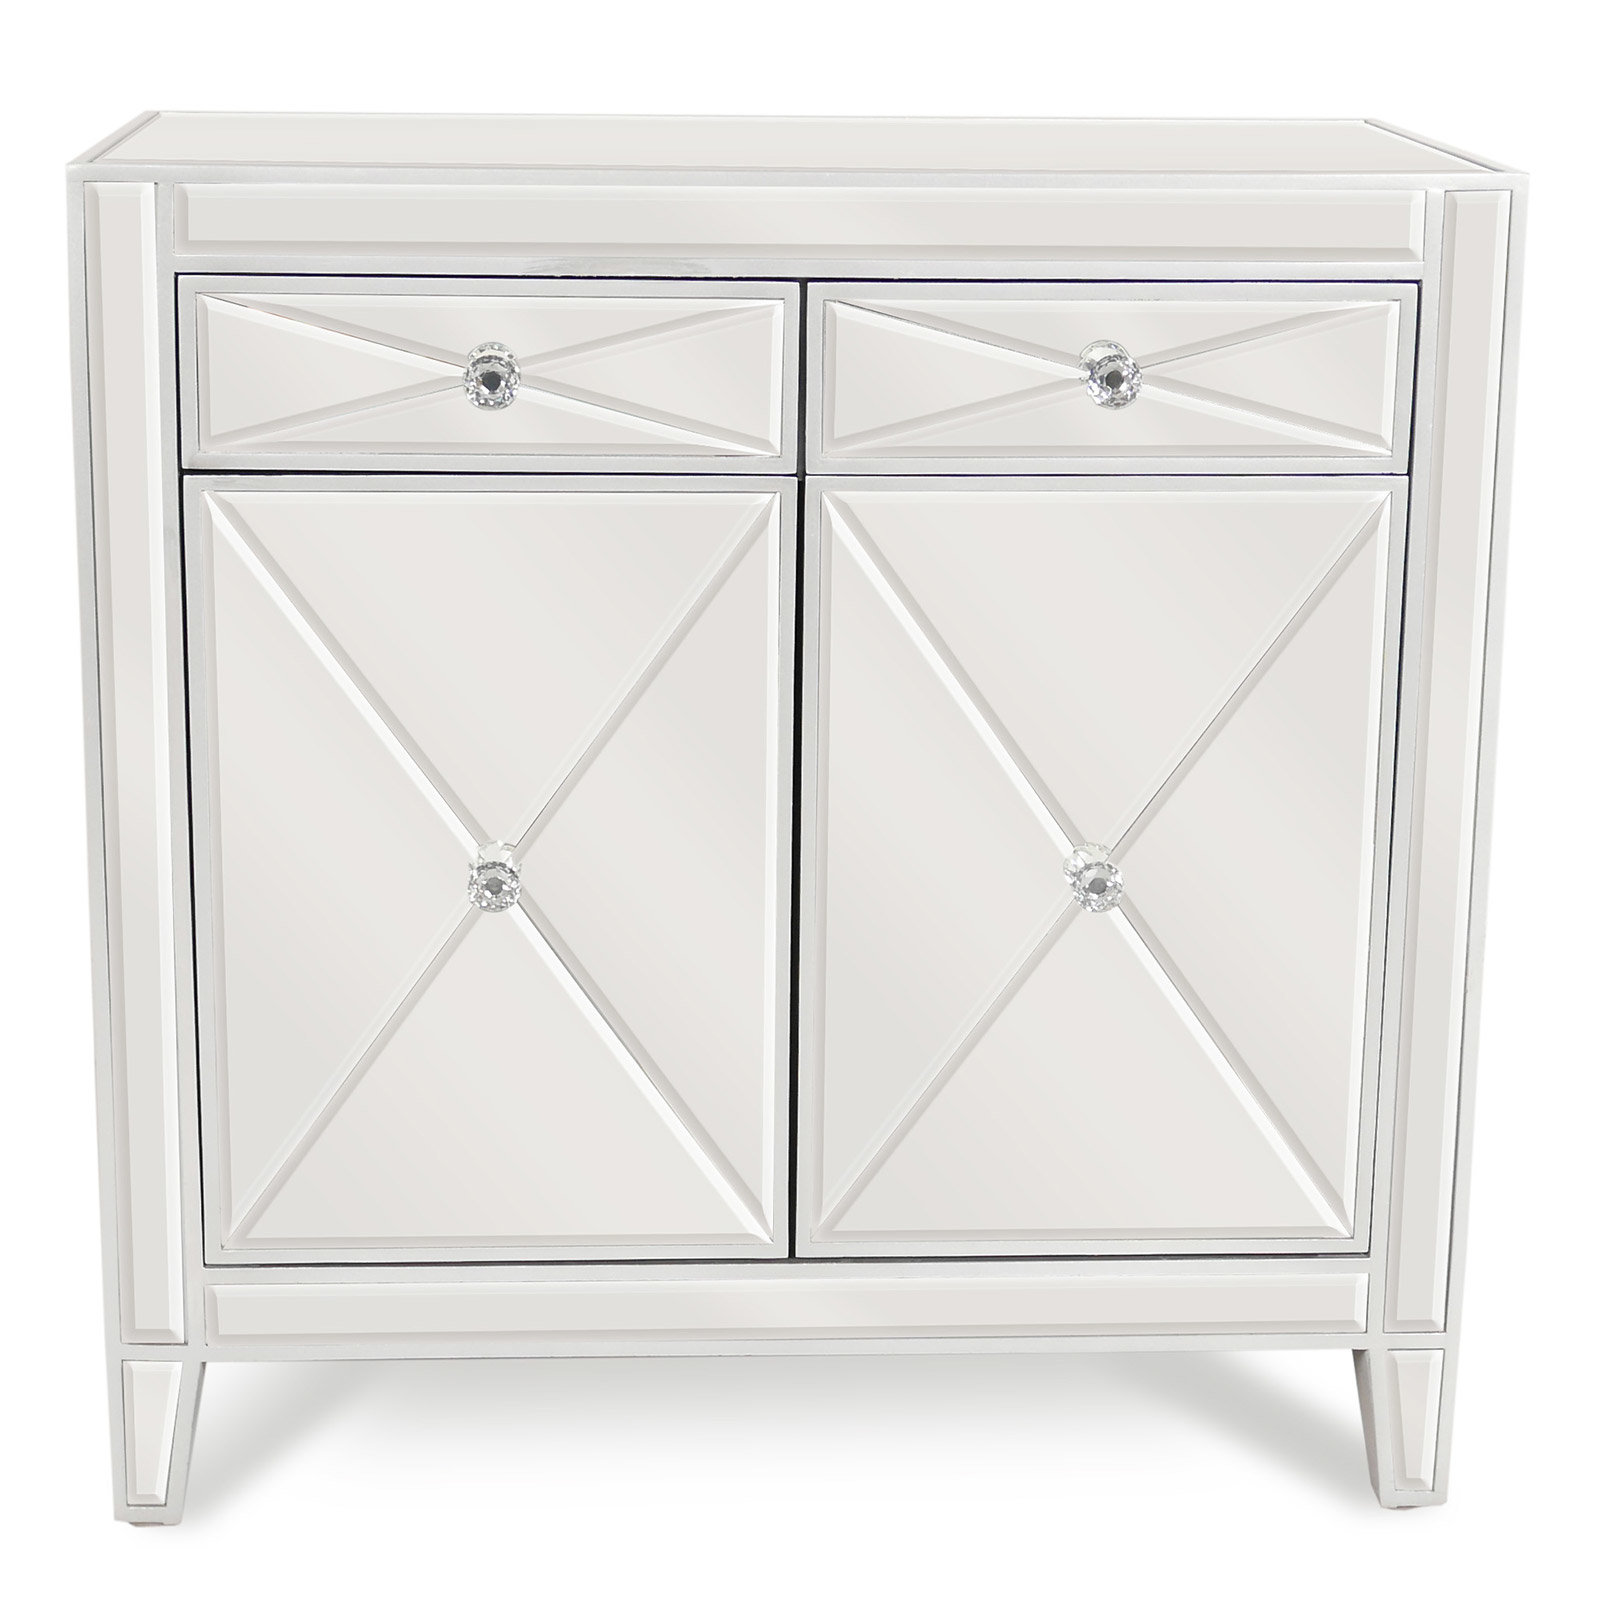 dresser mirrored tall chest door monarch hollywood britney black stylecraft white small gray accent drawers cabinet pulaski table full size beach themed home decor tabletop gas